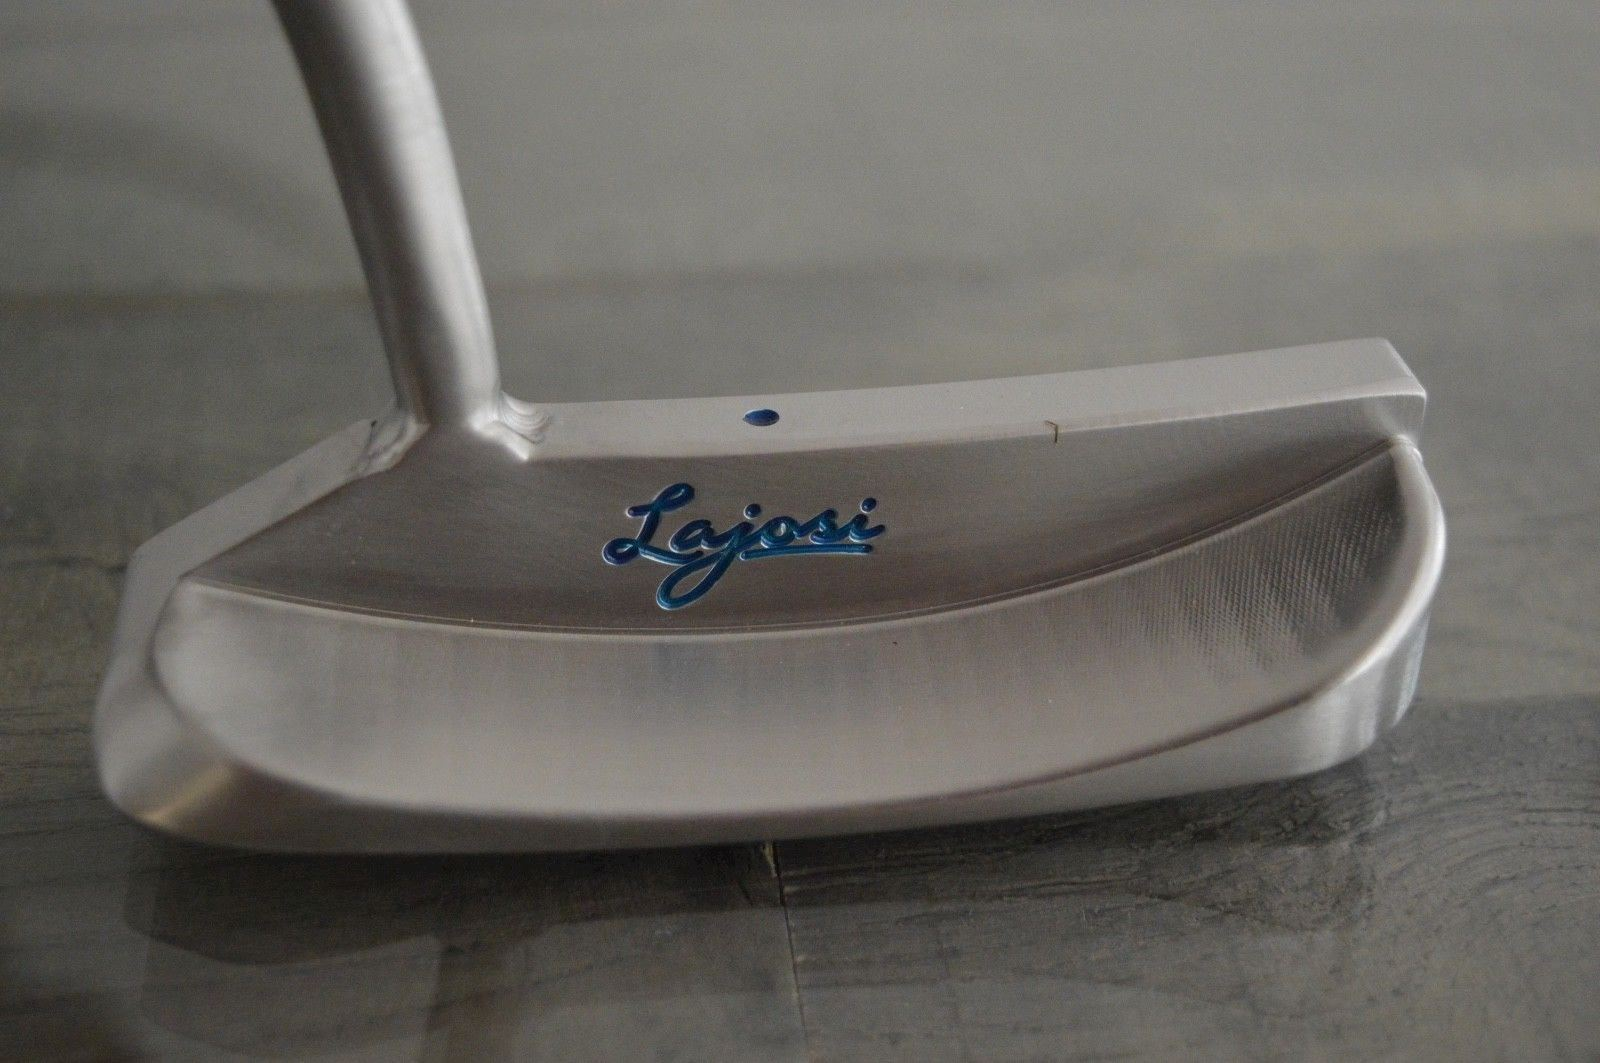 NEW GOLF PUTTER BY LAJOSI - KLP4 WB HANDMADE TOUR BLADE LINE